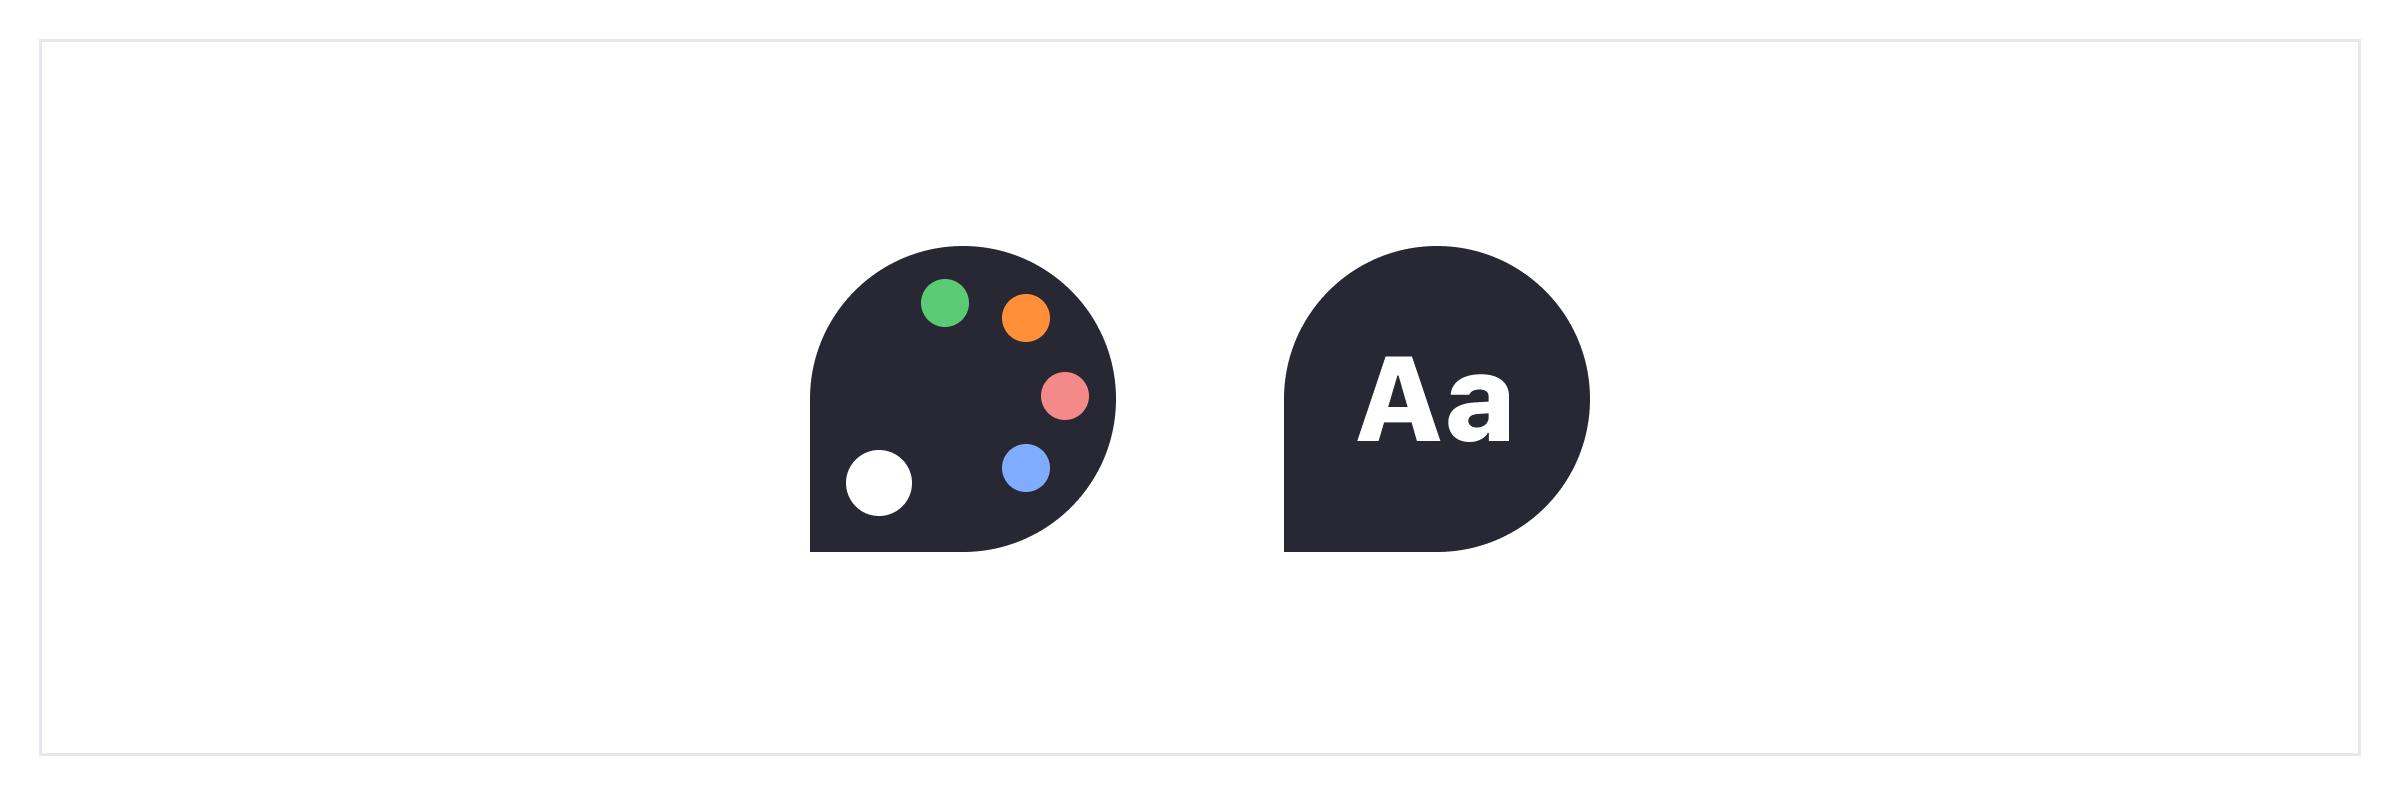 2 shapes showing a color palette and a text to represent the possible styles